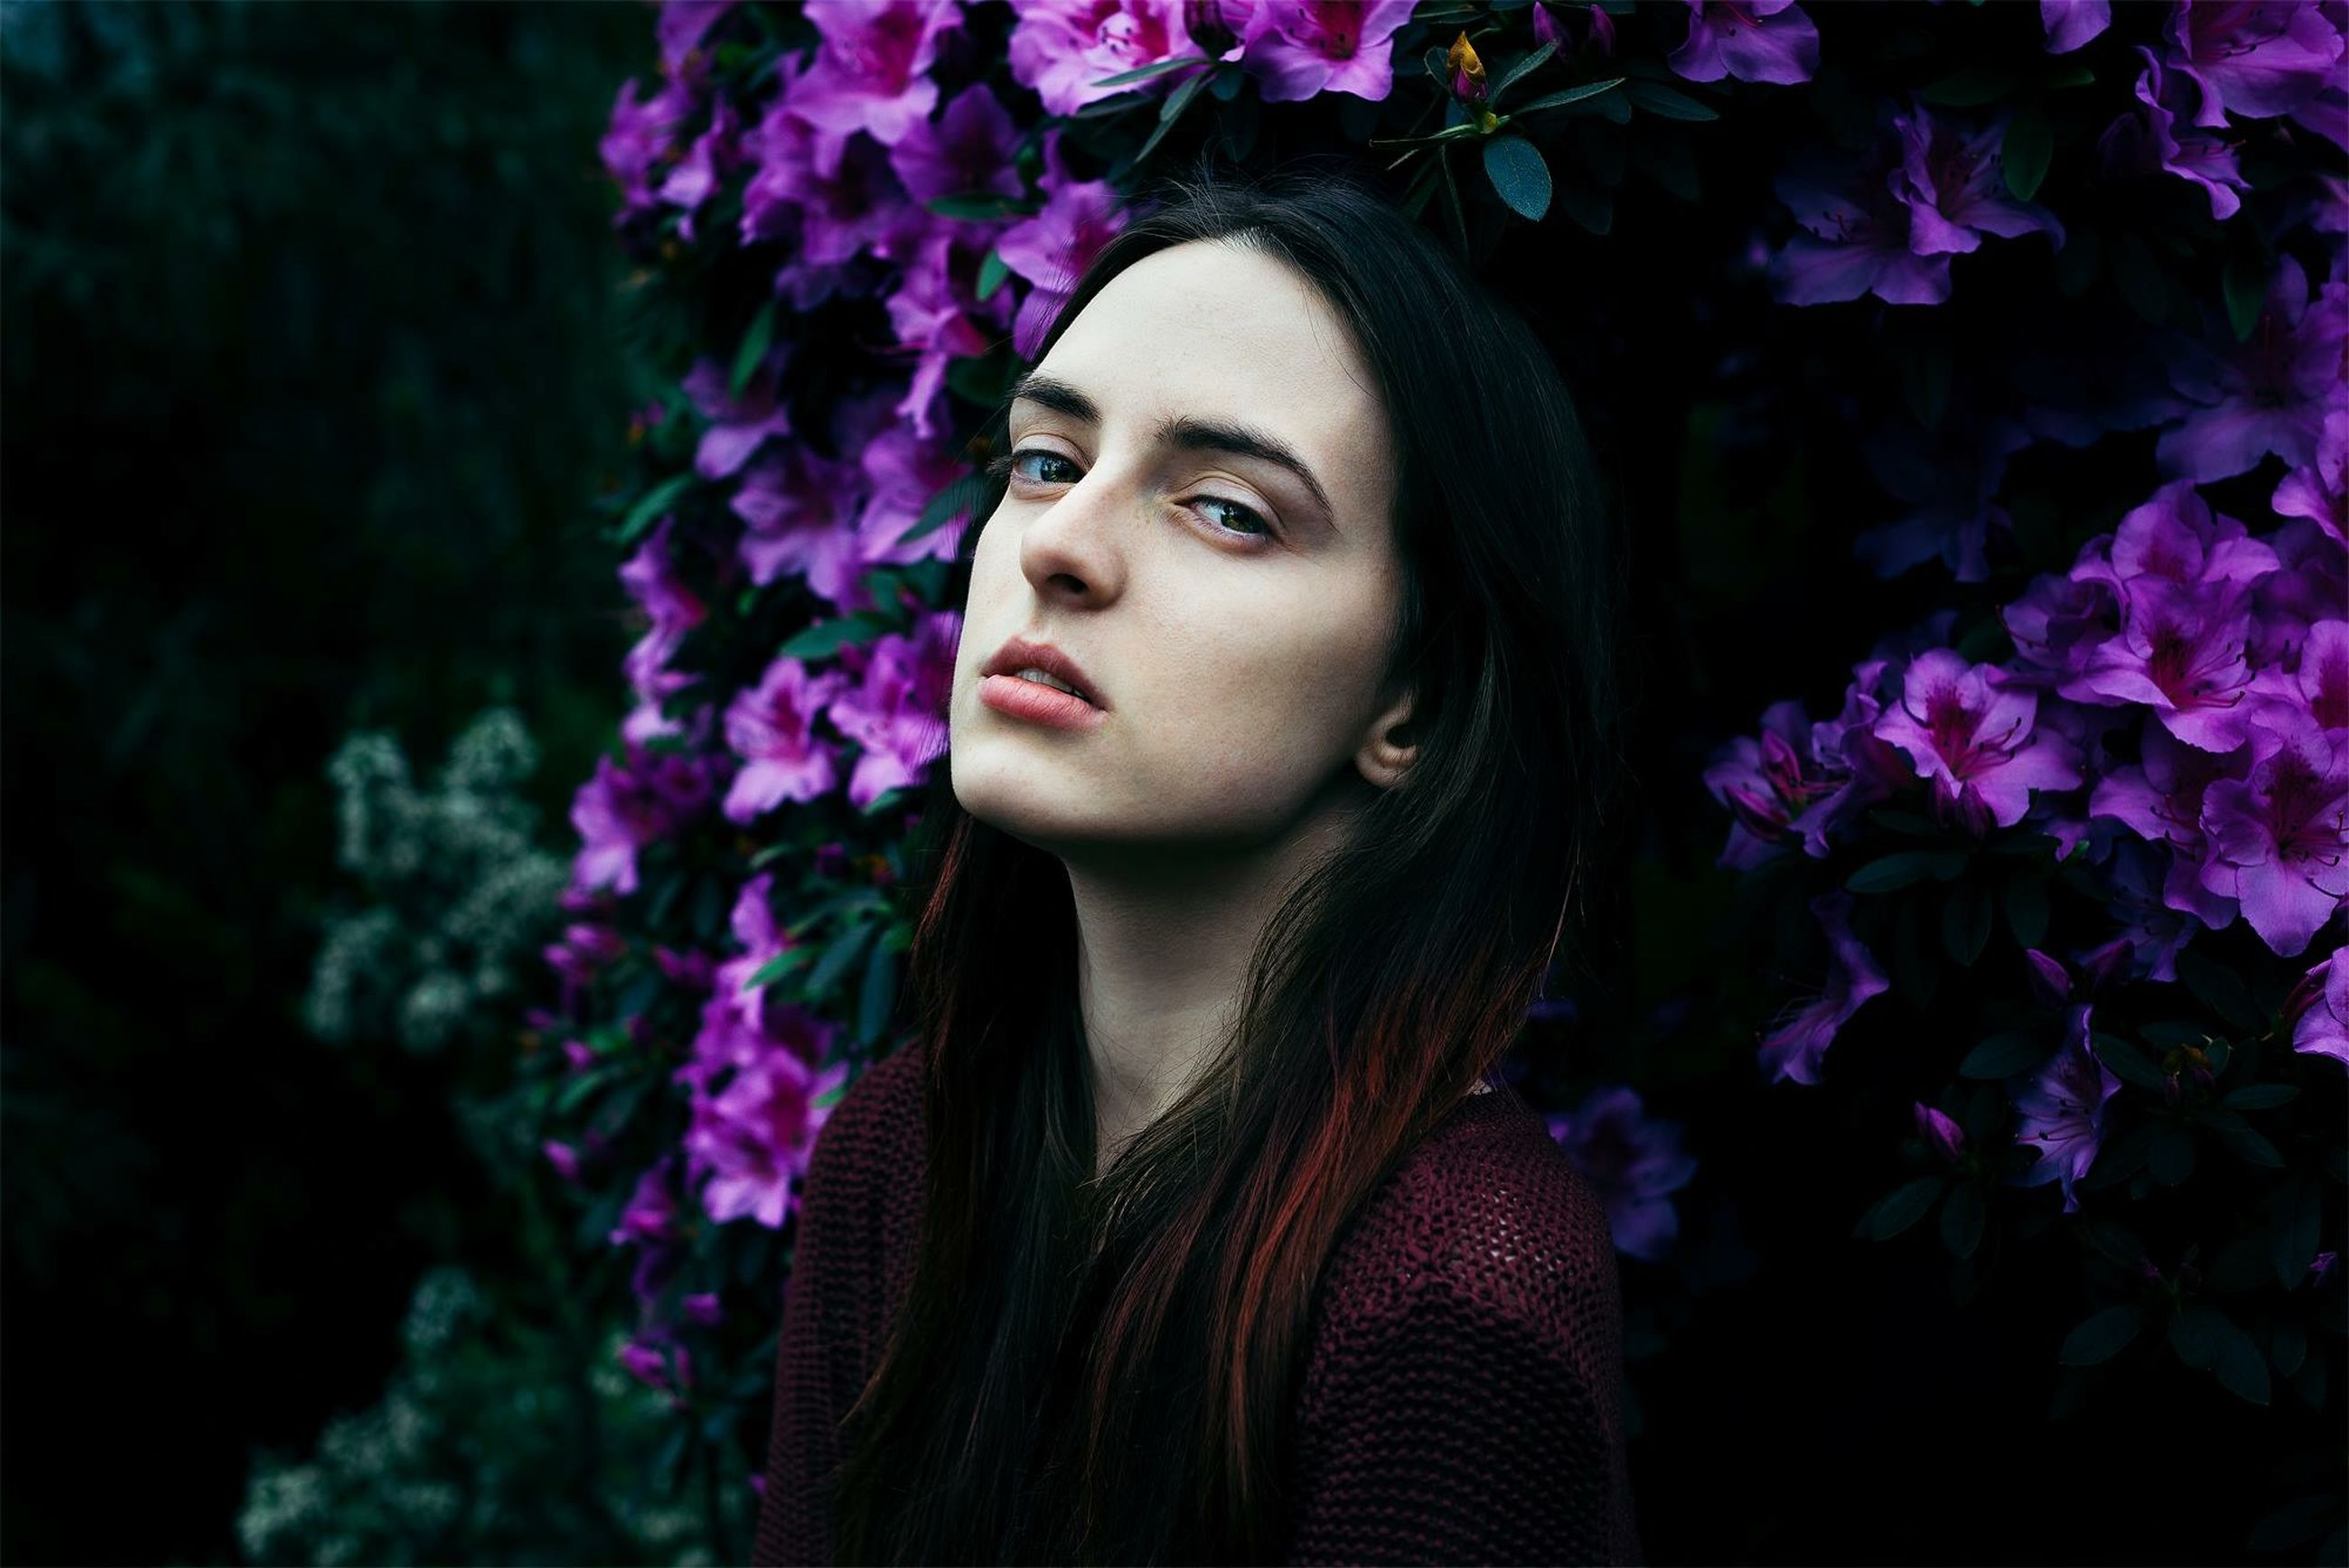 flower, young adult, young women, portrait, looking at camera, front view, person, beauty, lifestyles, close-up, long hair, focus on foreground, fragility, headshot, casual clothing, growth, pink color